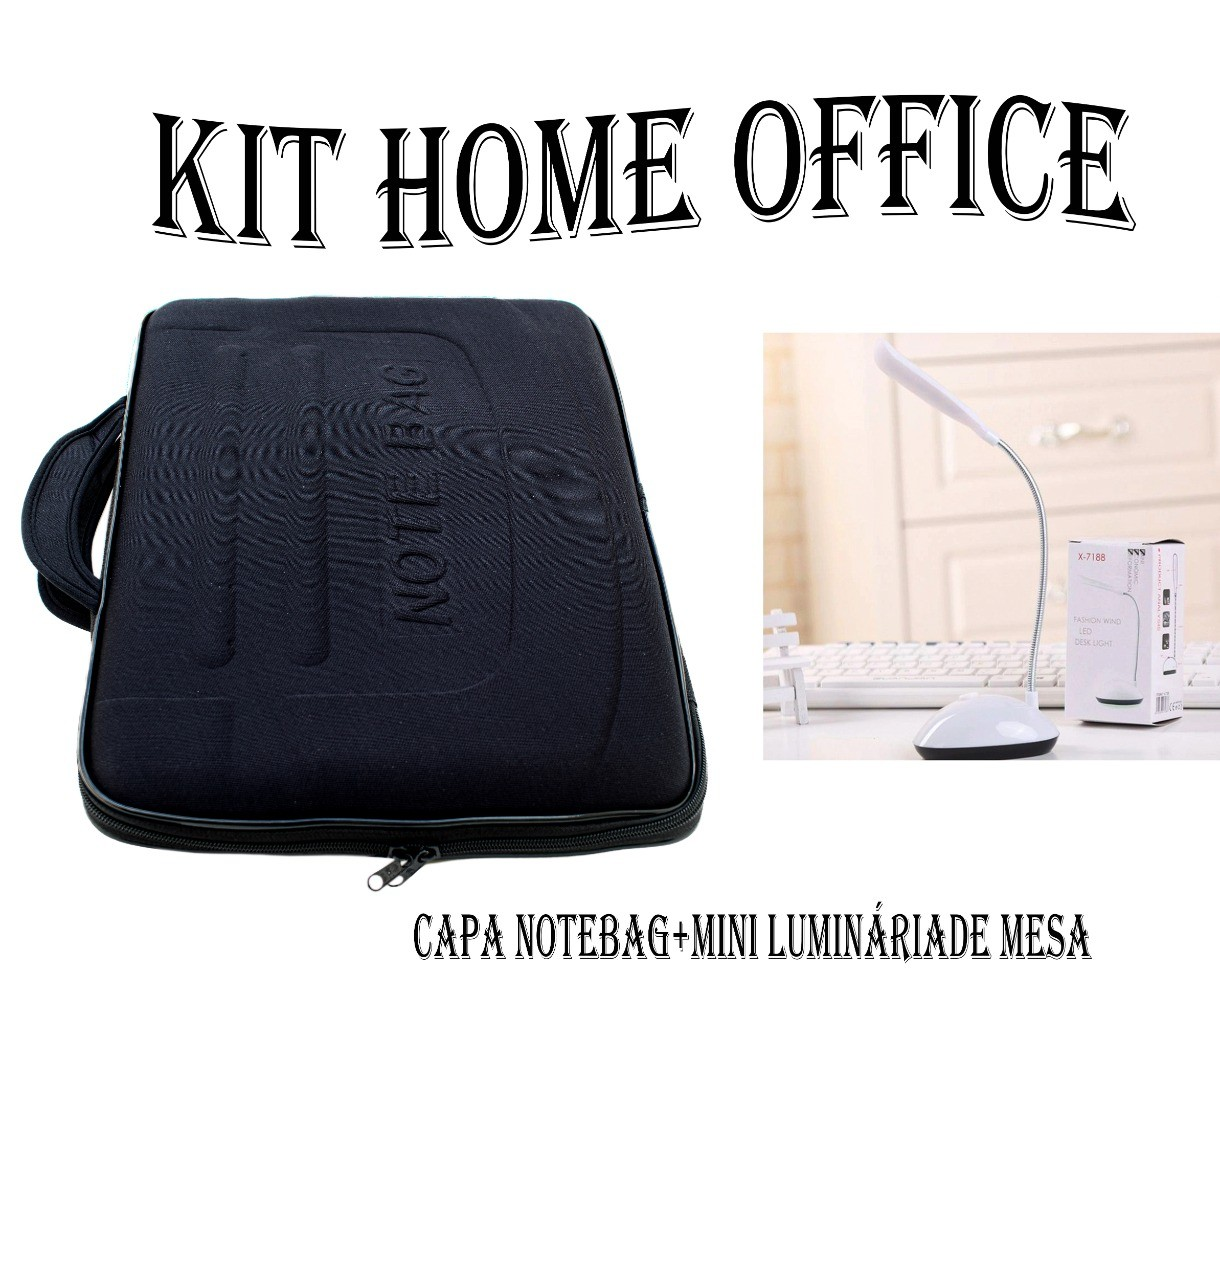 Kit Home Office Capa Case Maleta Para Notebook E Luminária De Mesa Led